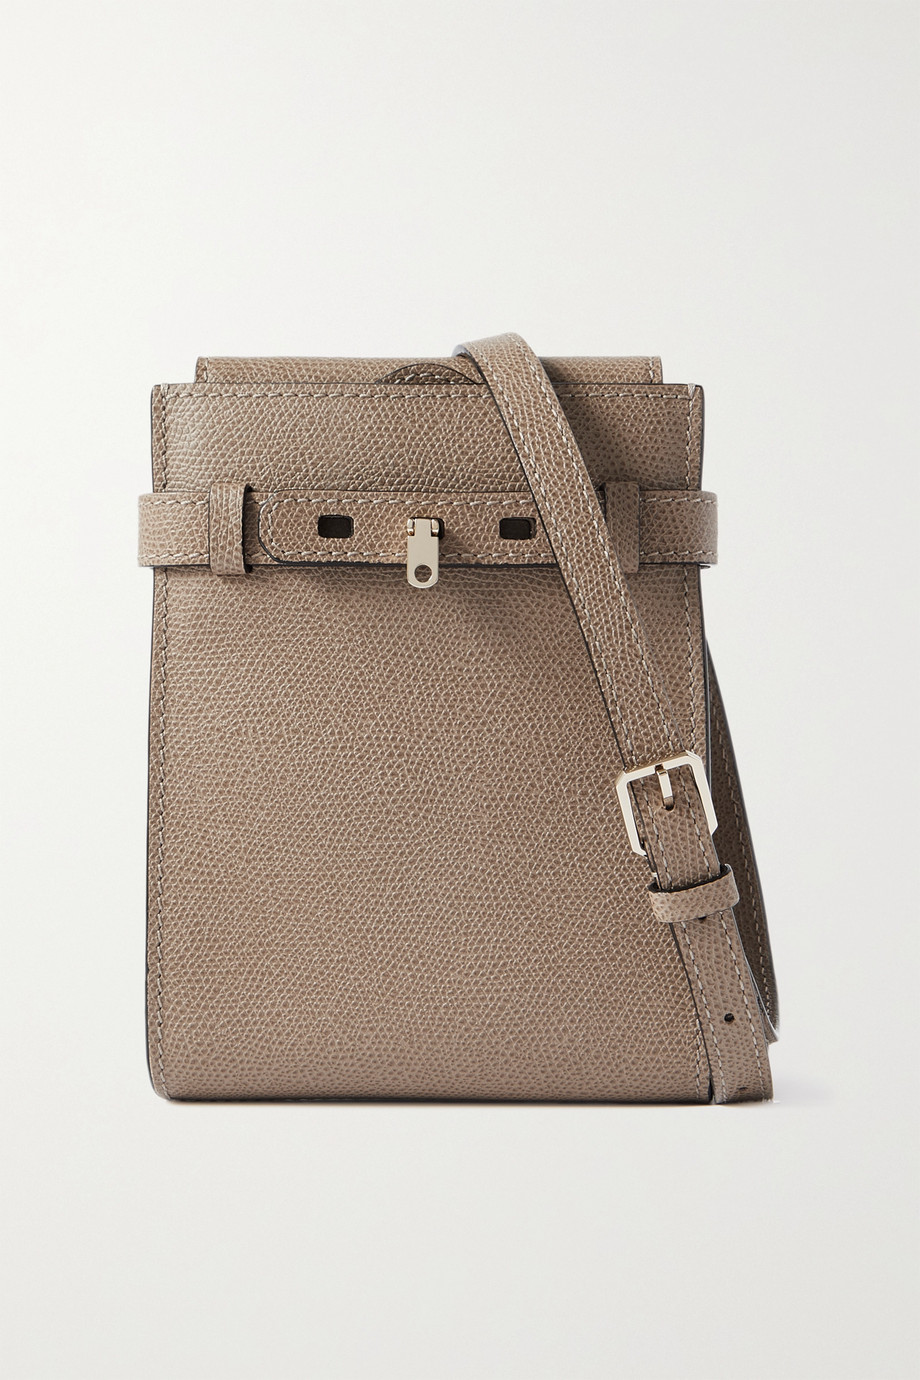 VALEXTRA Slim B-Tracollina textured-leather shoulder bag